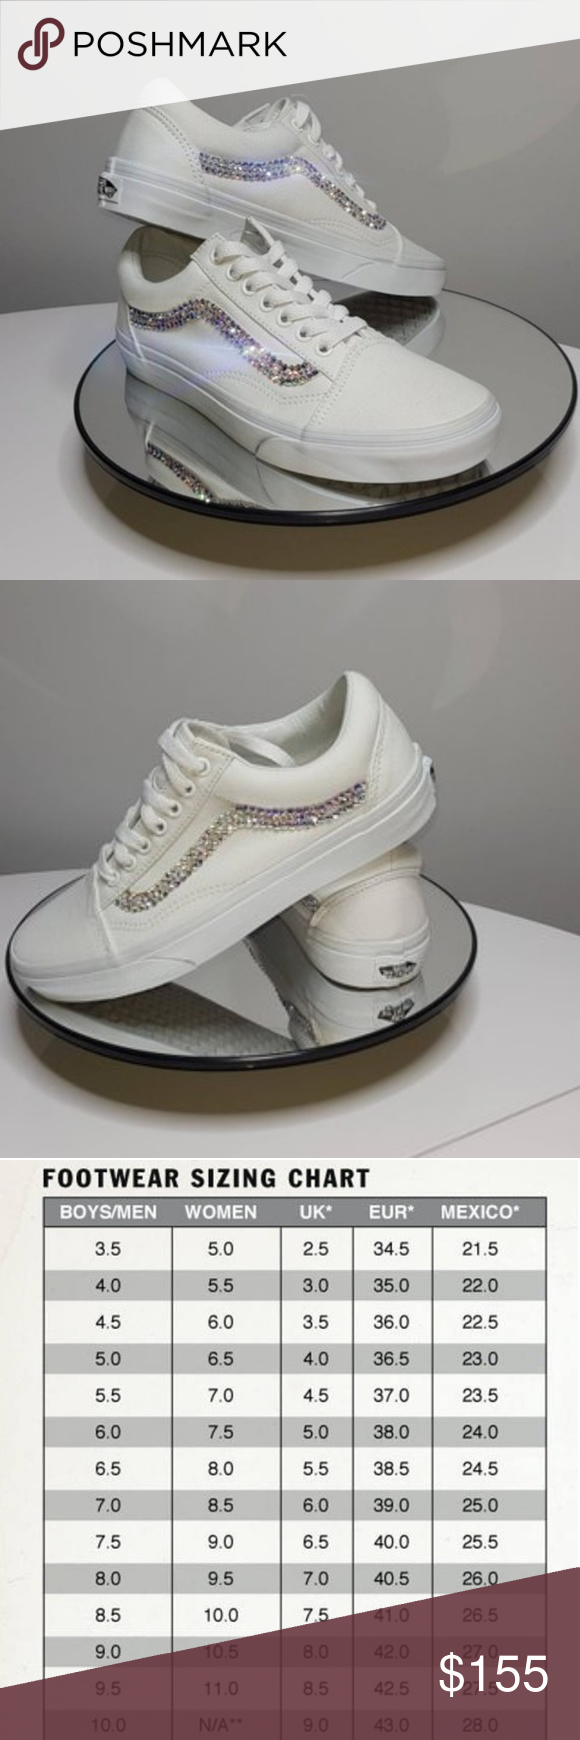 c60182b4c4f Swarovski Vans These are handmade and will take up to 2 weeks to ship